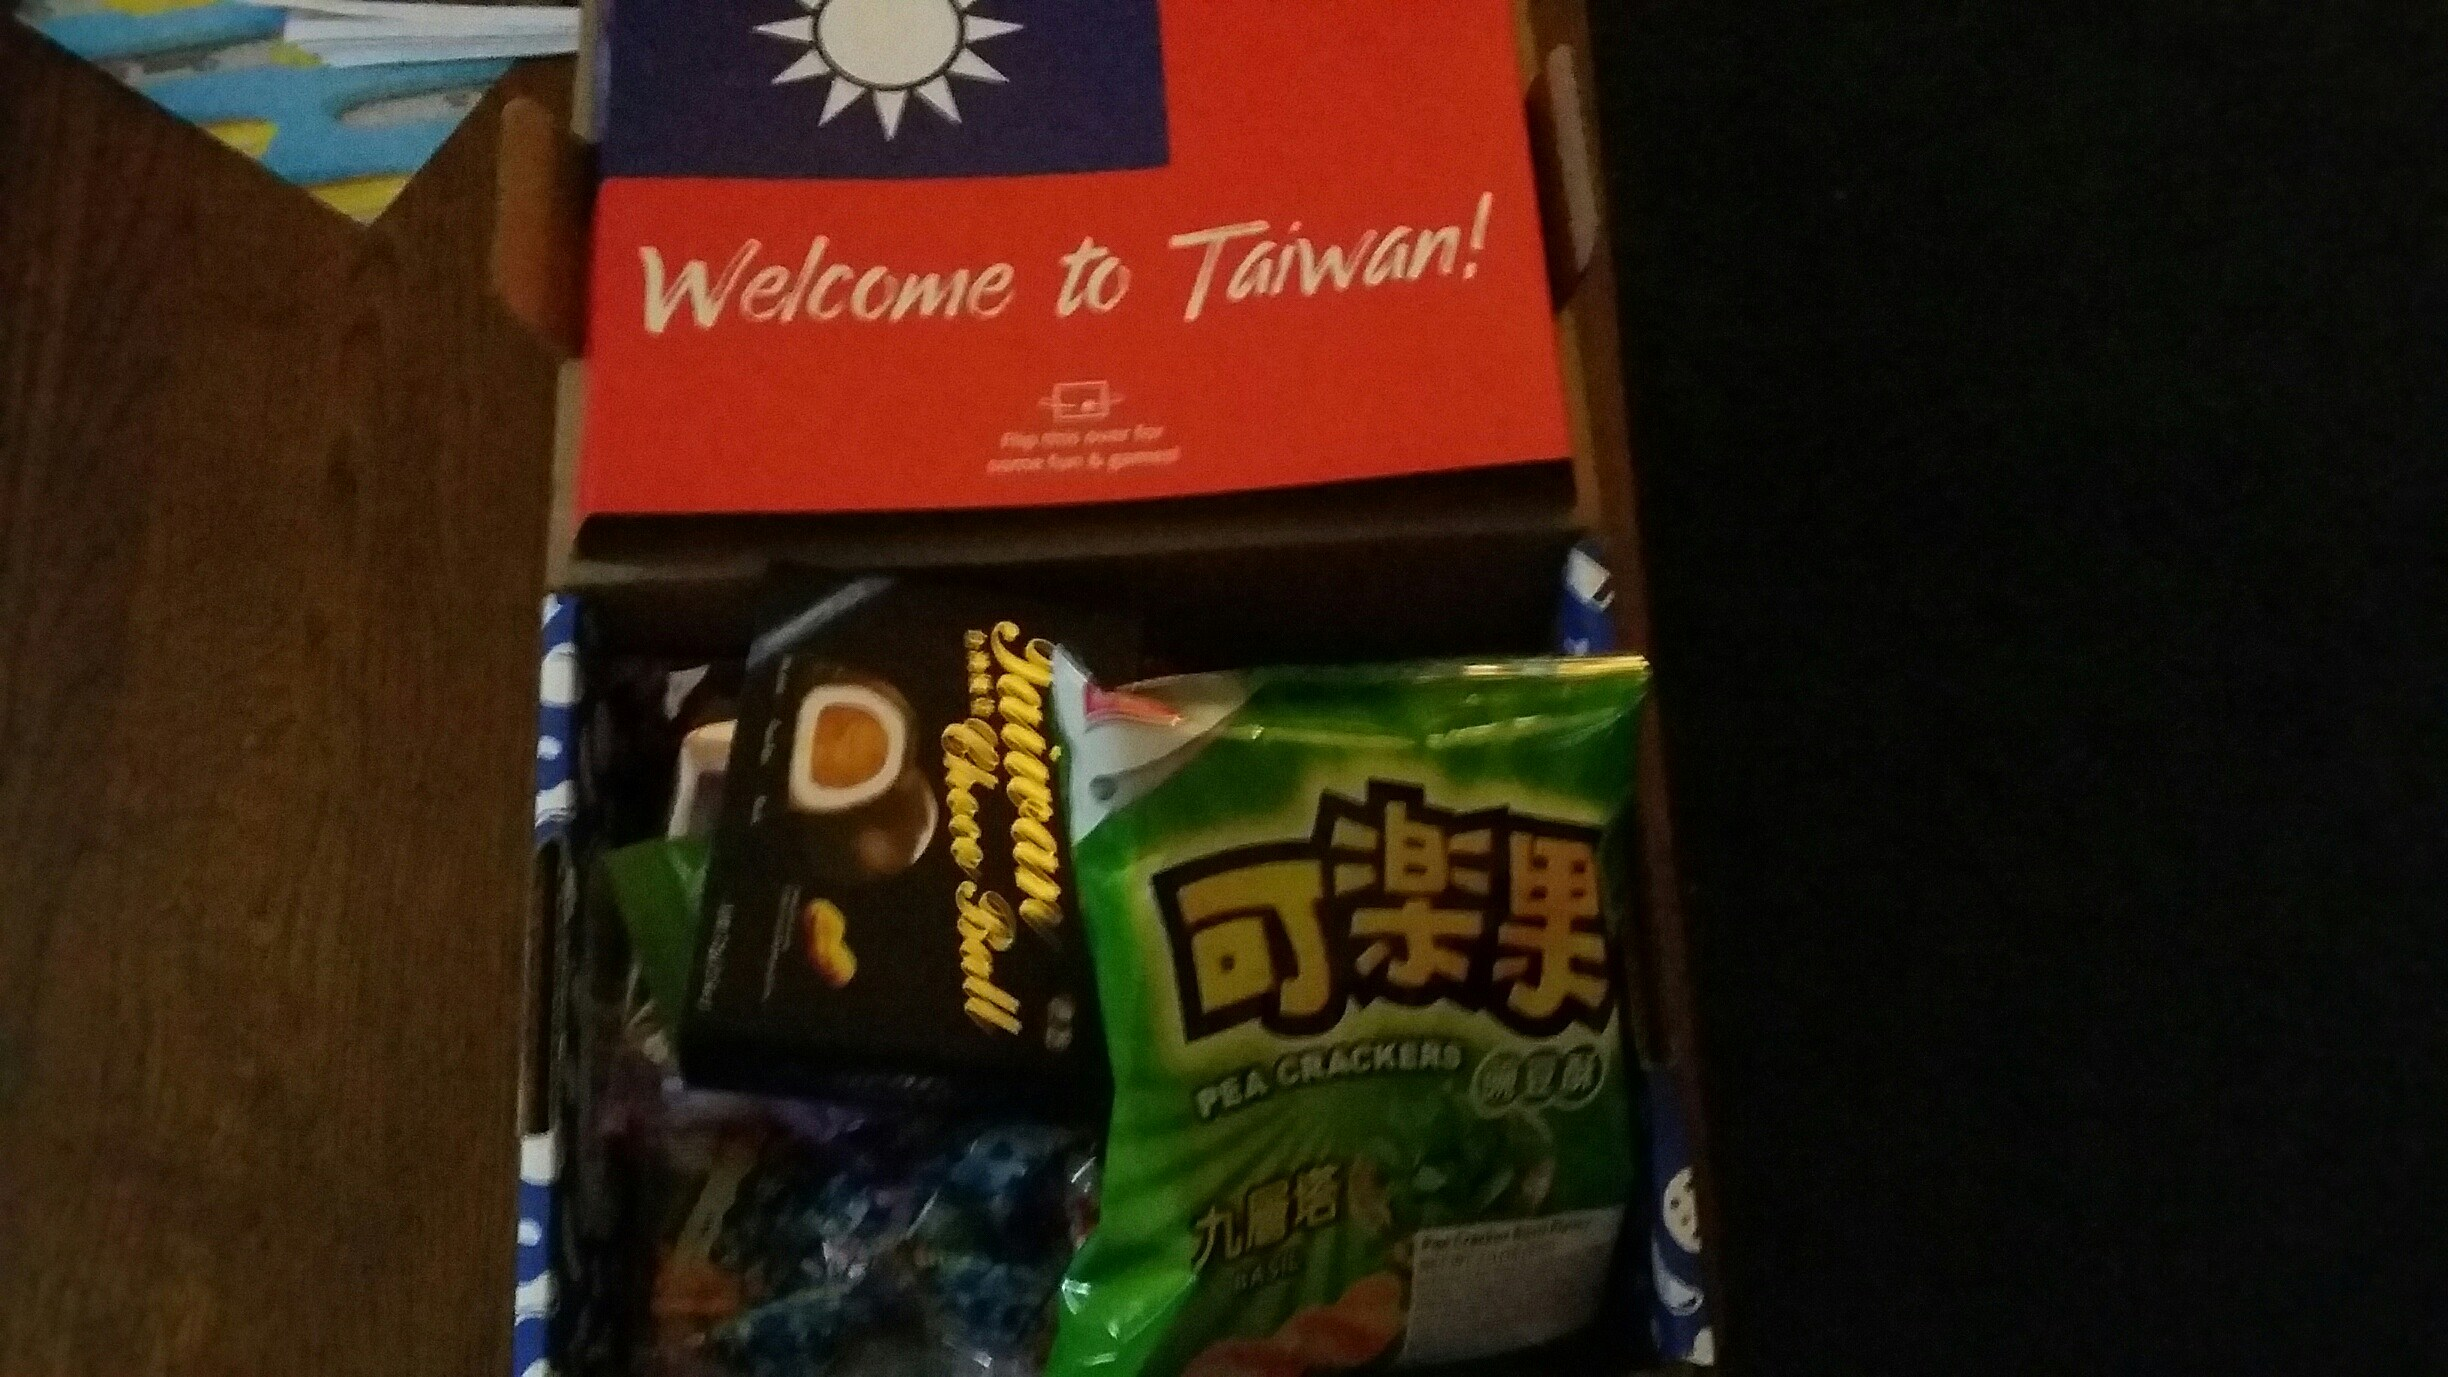 The Sedalia Snack Squad (With Guests) Takes On: Taiwan